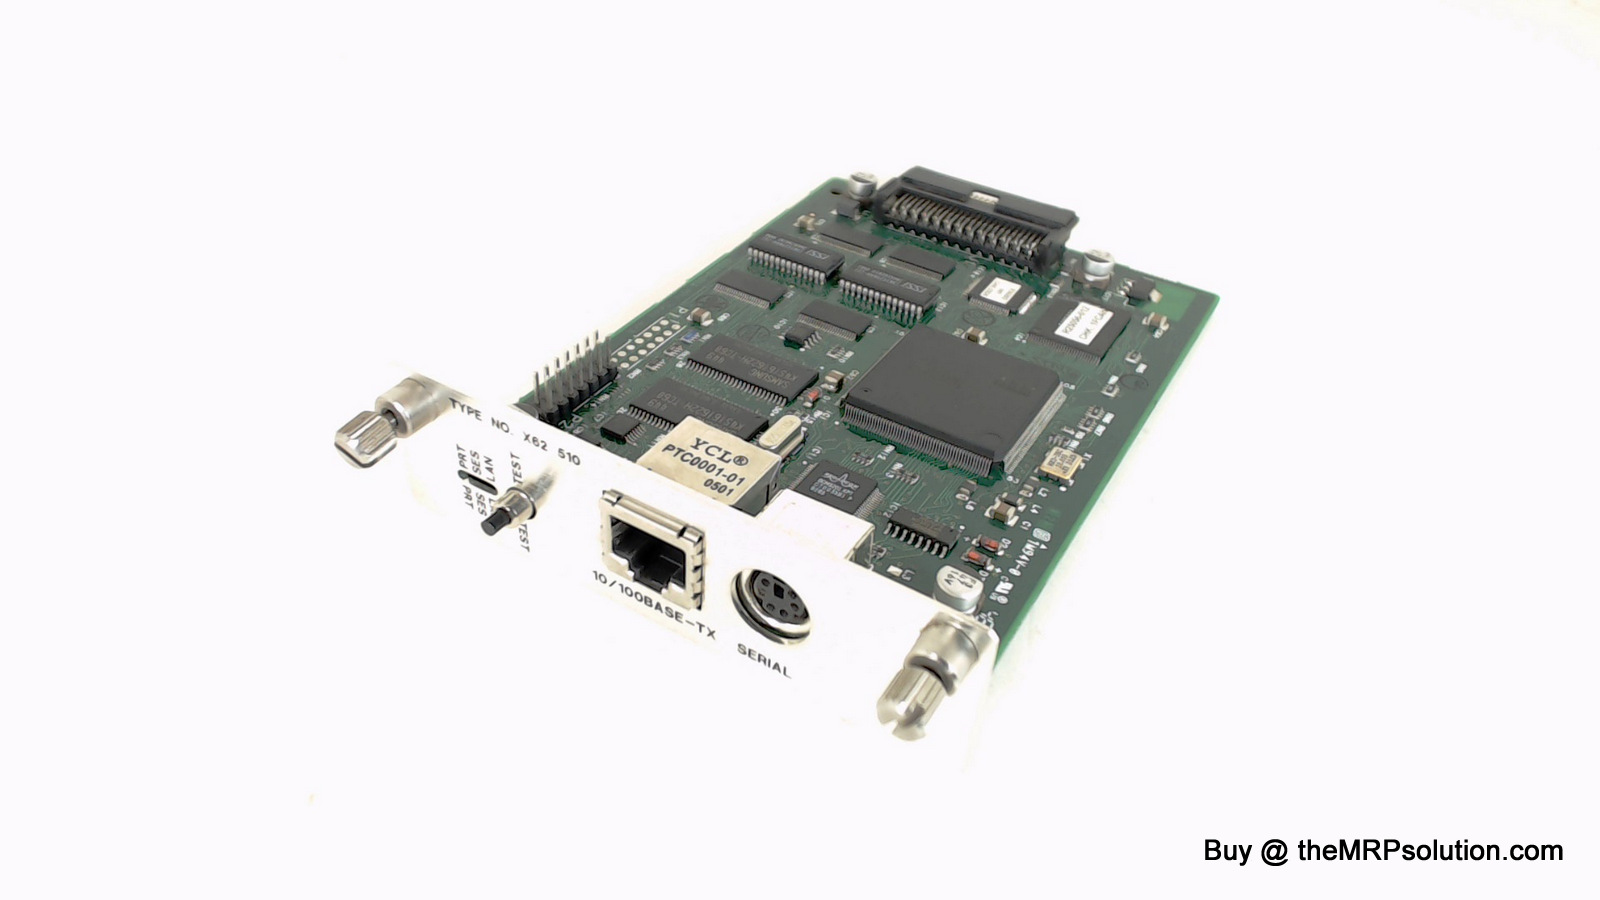 TALLYGEN 1PG56015-B01 PWB, 10/100, ETHERNET, T6300 New